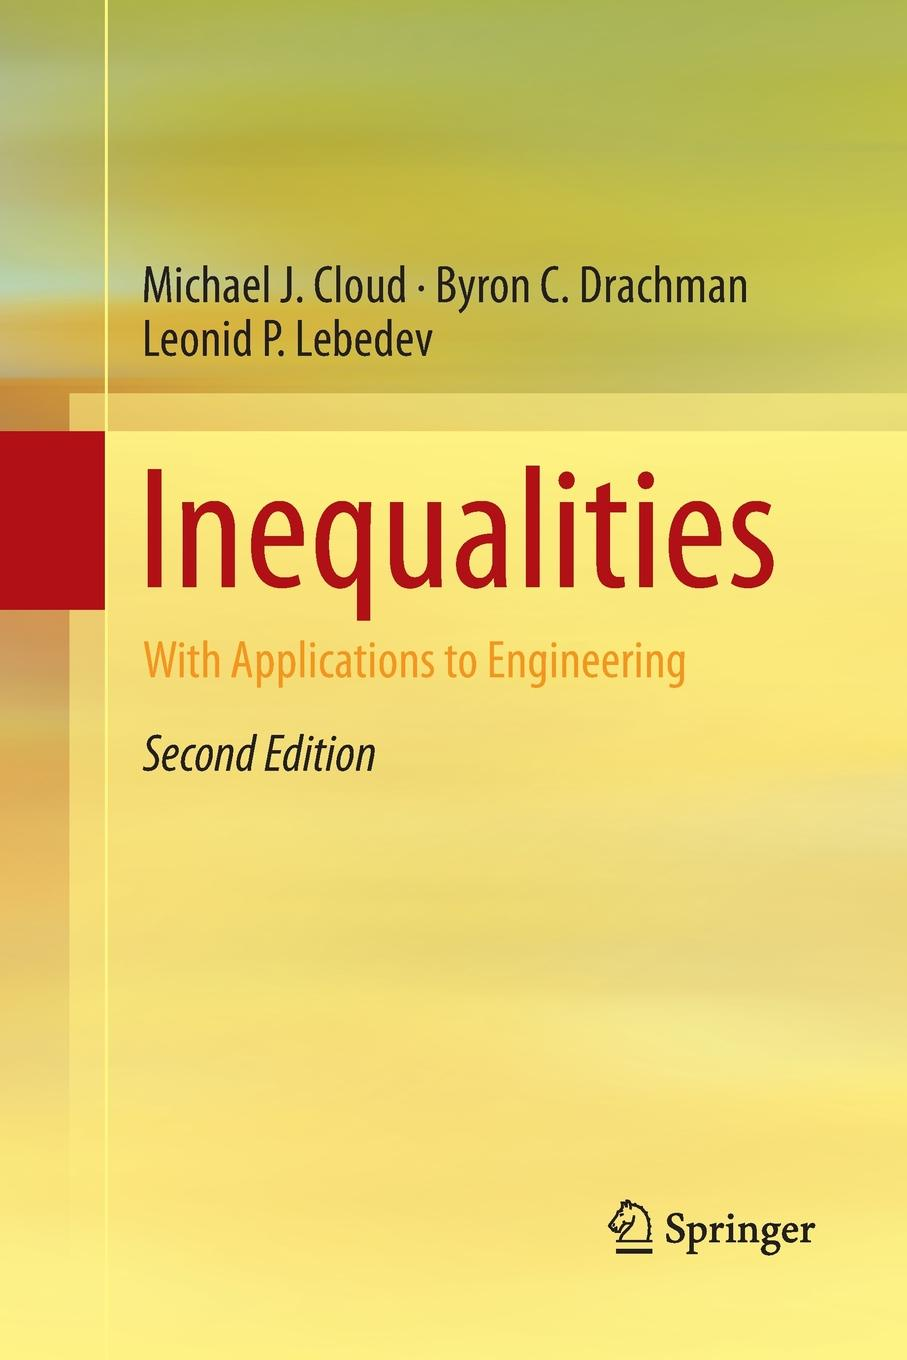 Michael J. Cloud, Byron C. Drachman, Leonid P. Lebedev Inequalities. With Applications to Engineering timothy ross j fuzzy logic with engineering applications